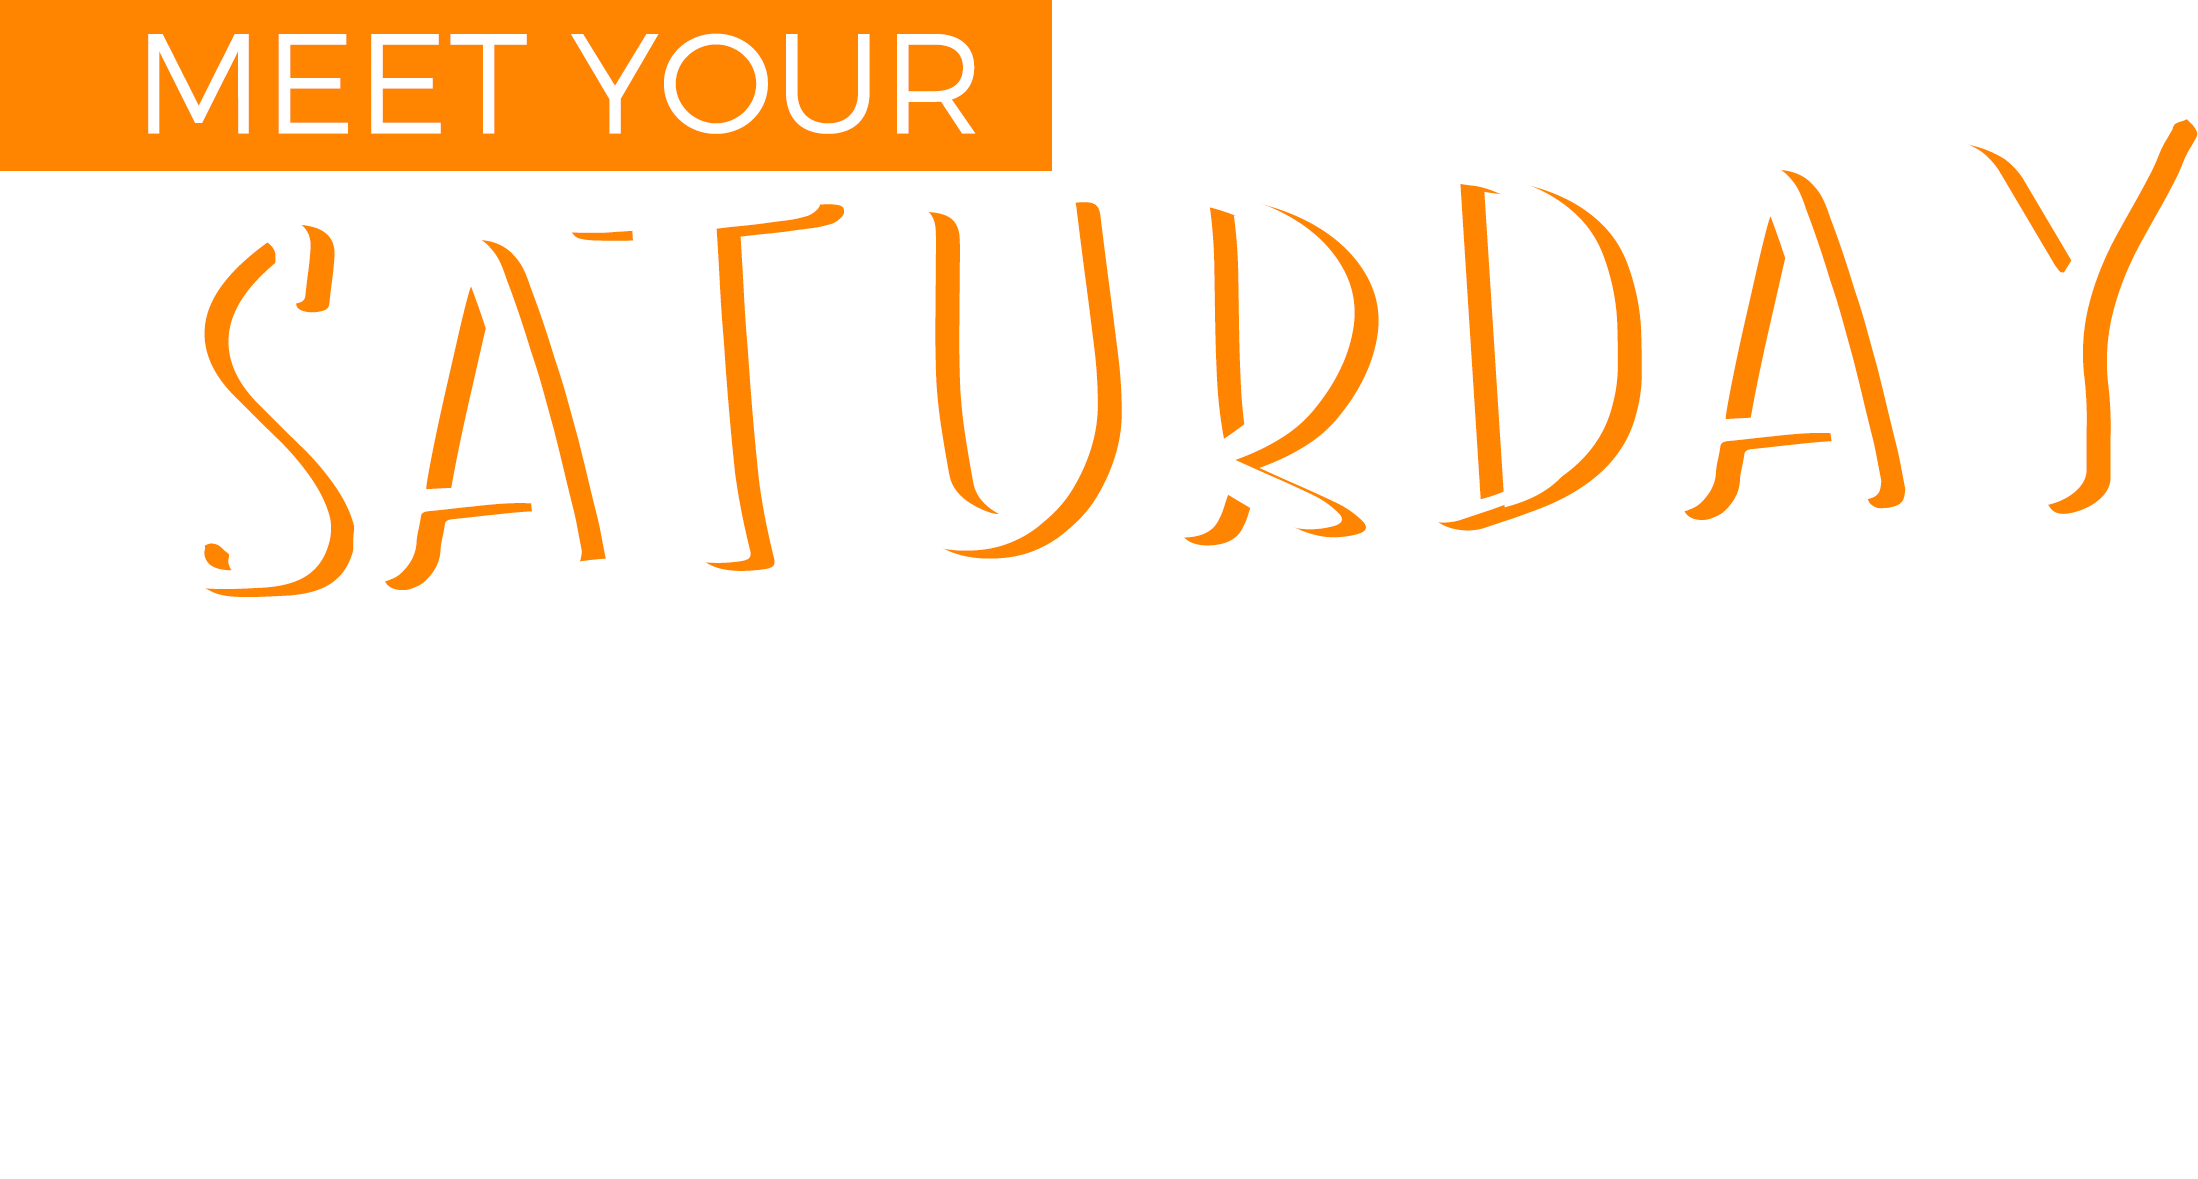 Meet Your Saturday Self